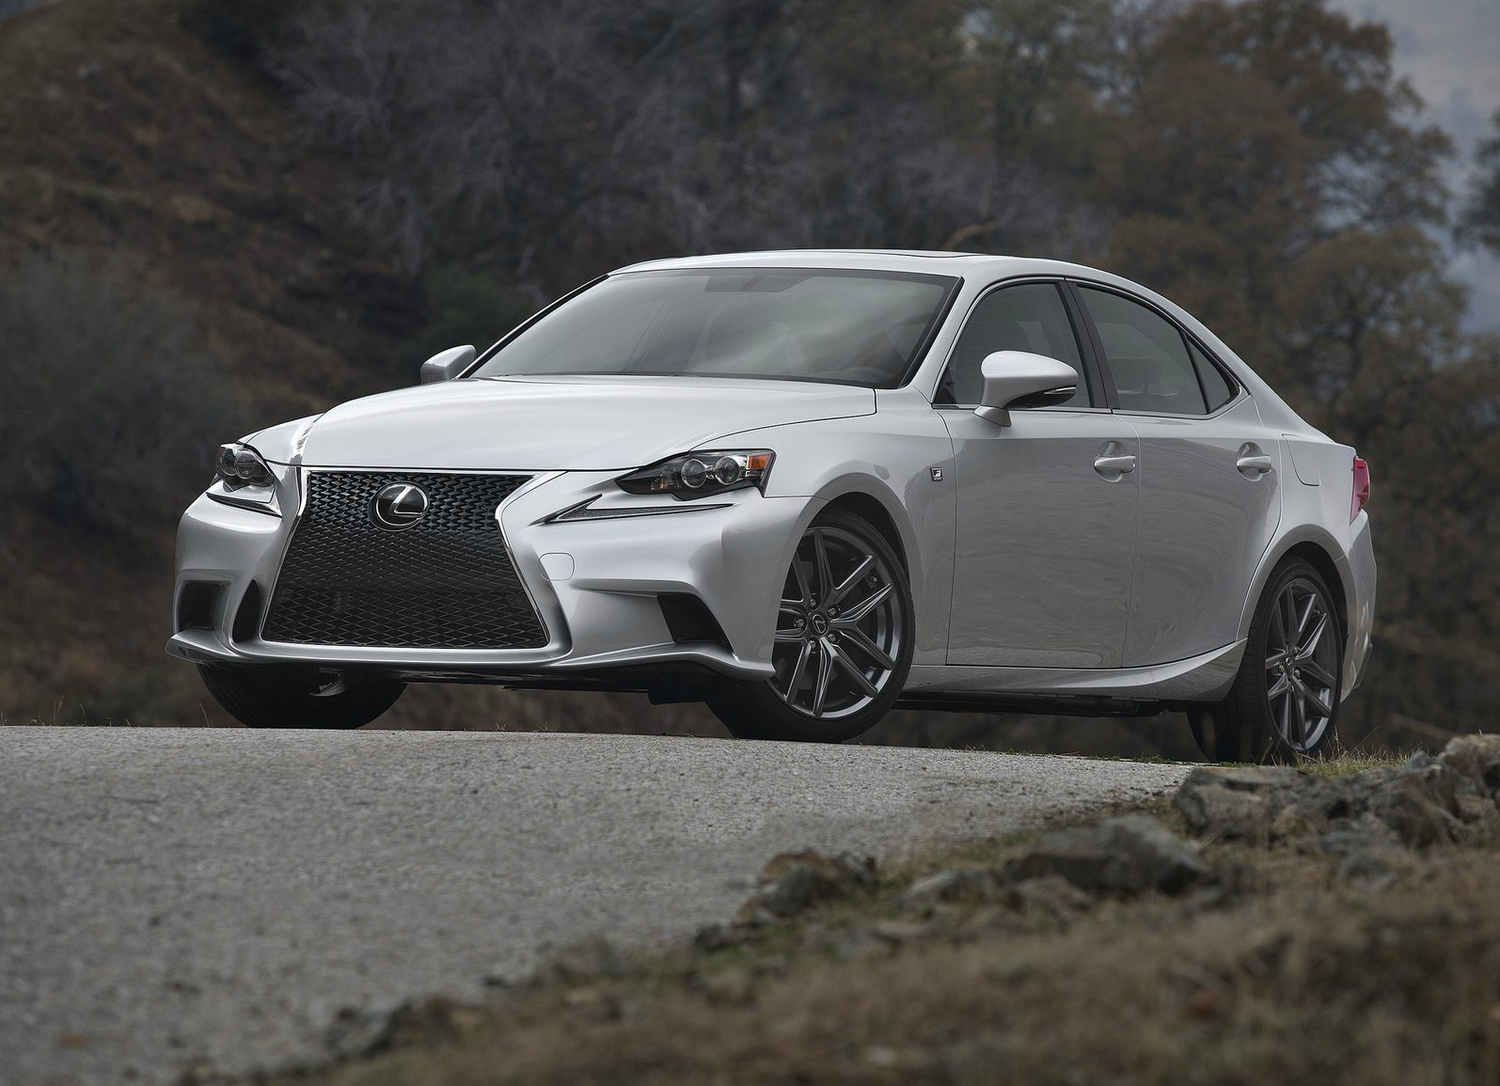 lexus assignment Cardmember exclusives  earn 5,000 bonus points when you spend $500 outside of lexus  comenity capital bank does not have the ability to control assignment.